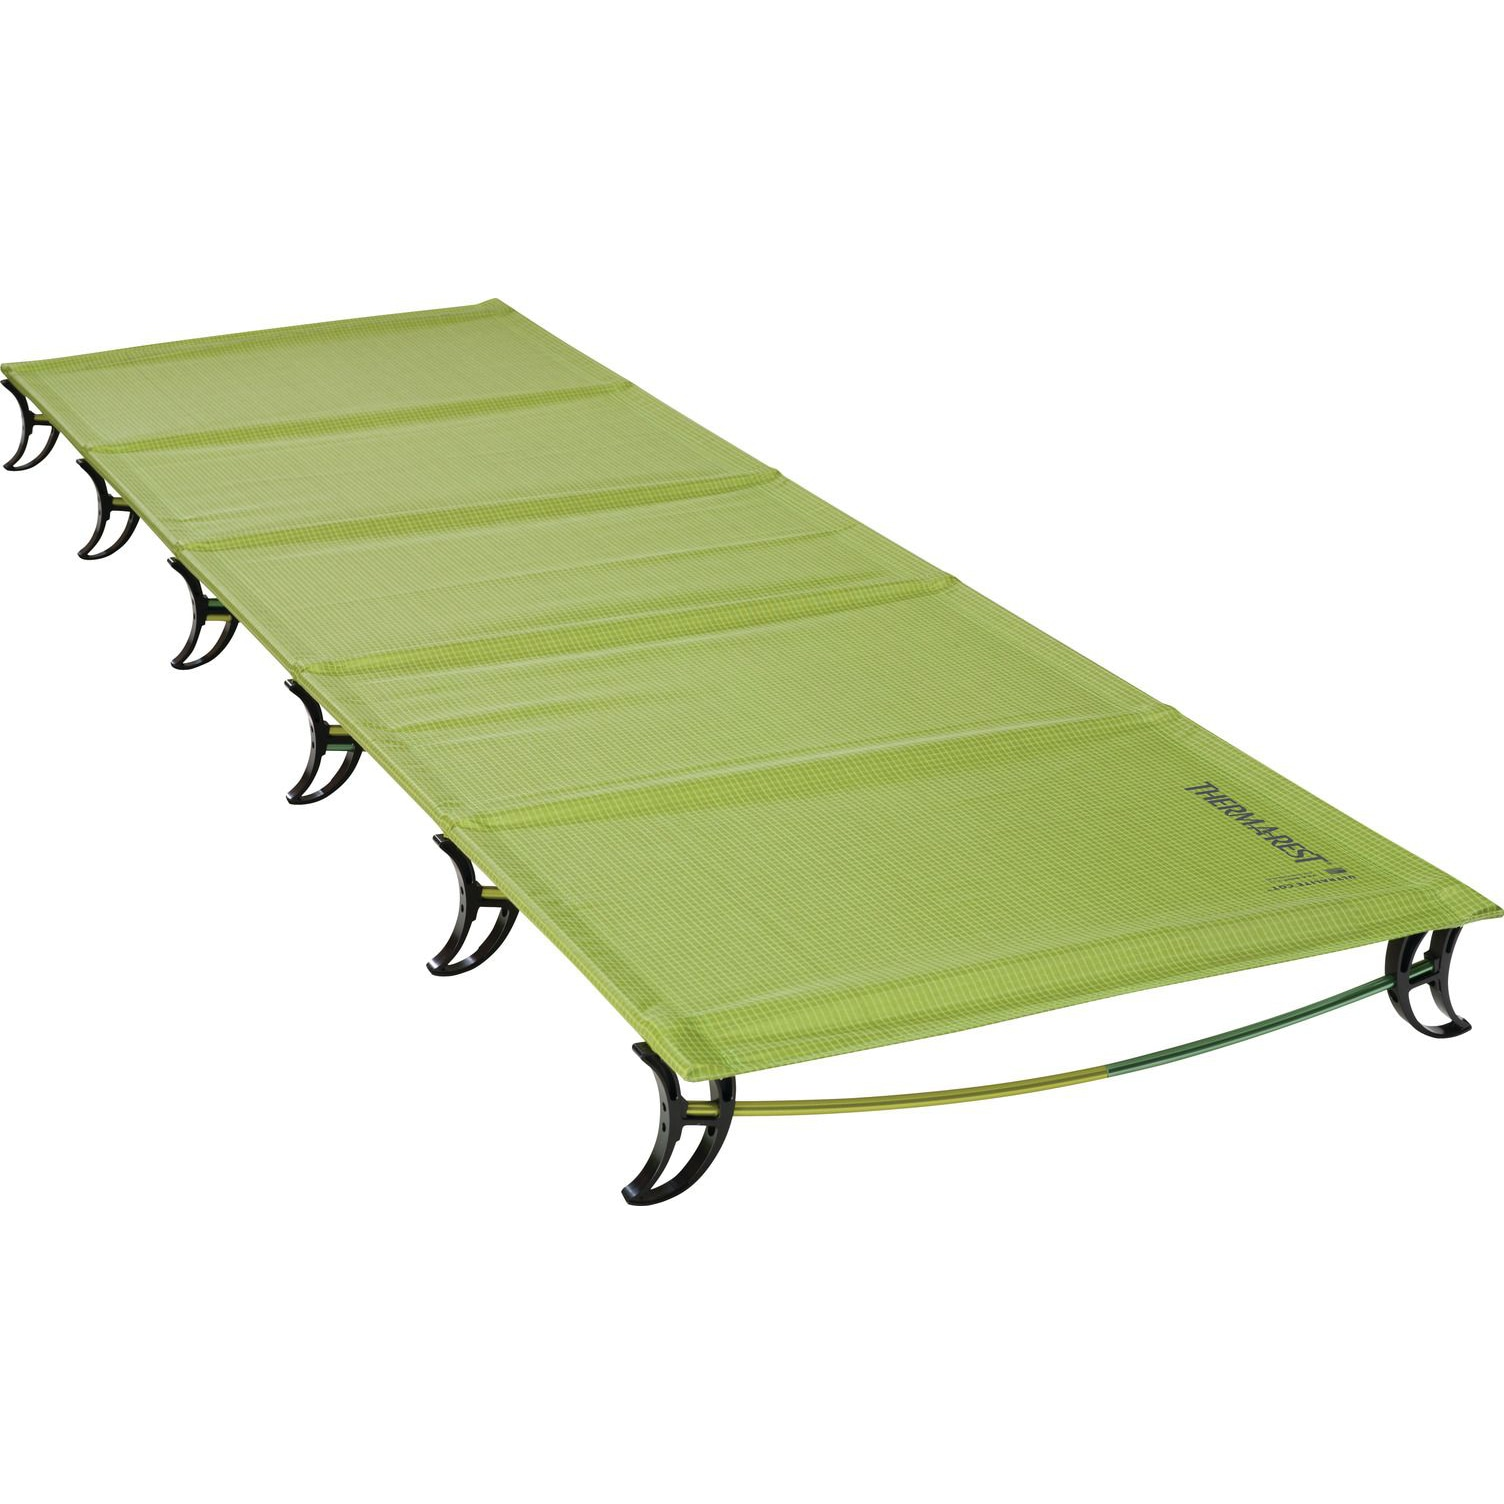 Ultra Lite Cot Regular